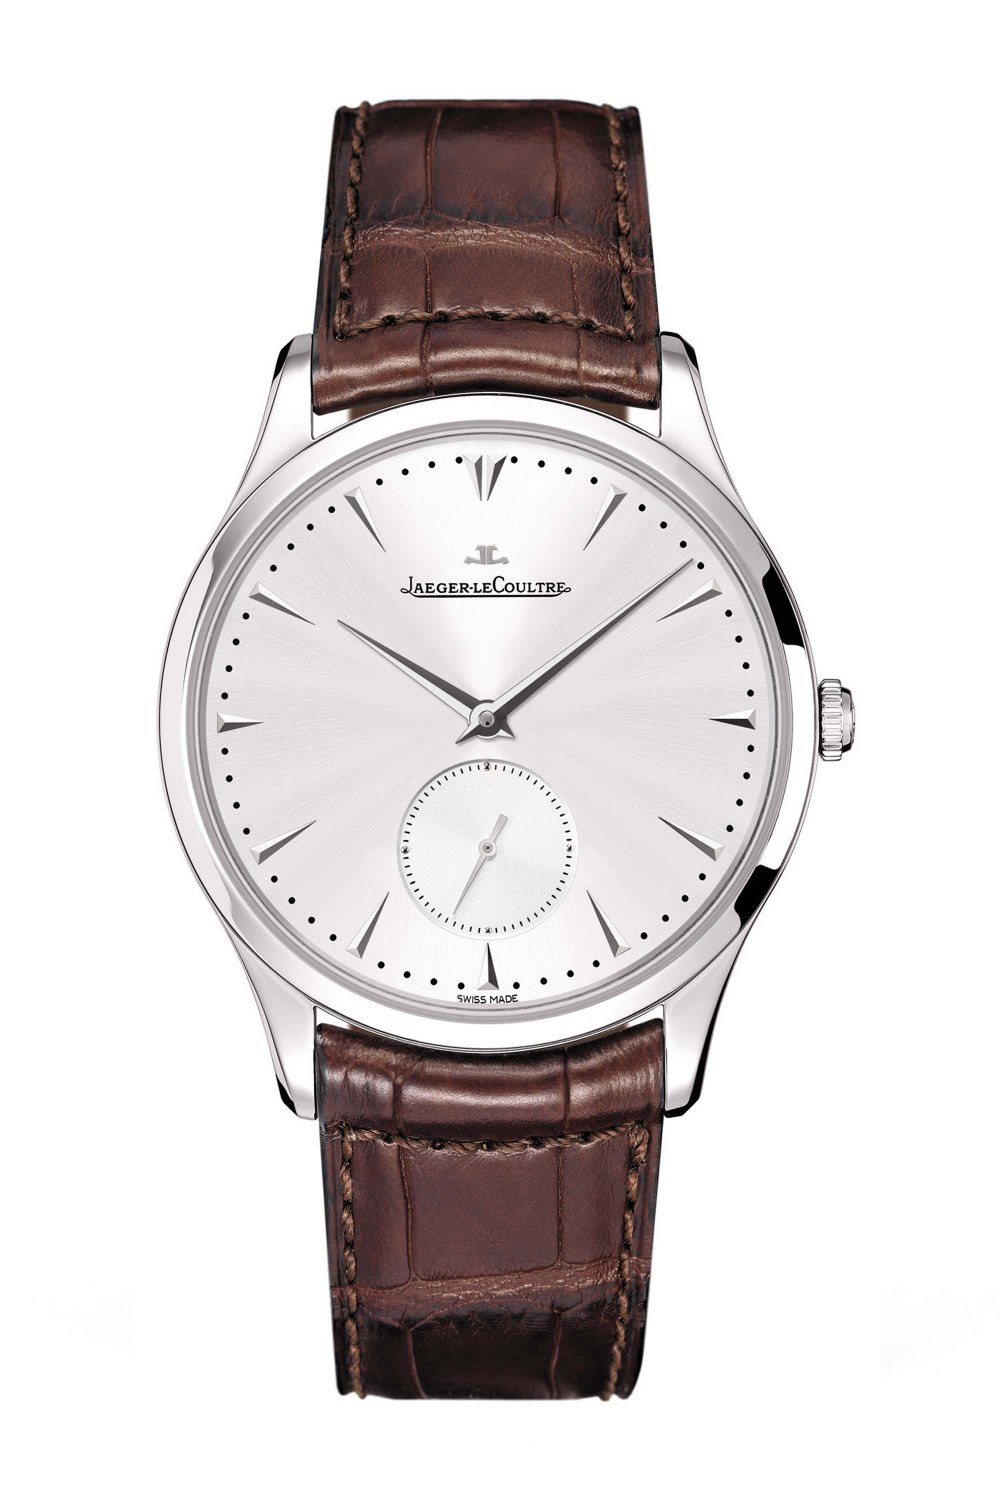 JAEGER-LECOULTRE Master Grande Ultra Thin 1358420